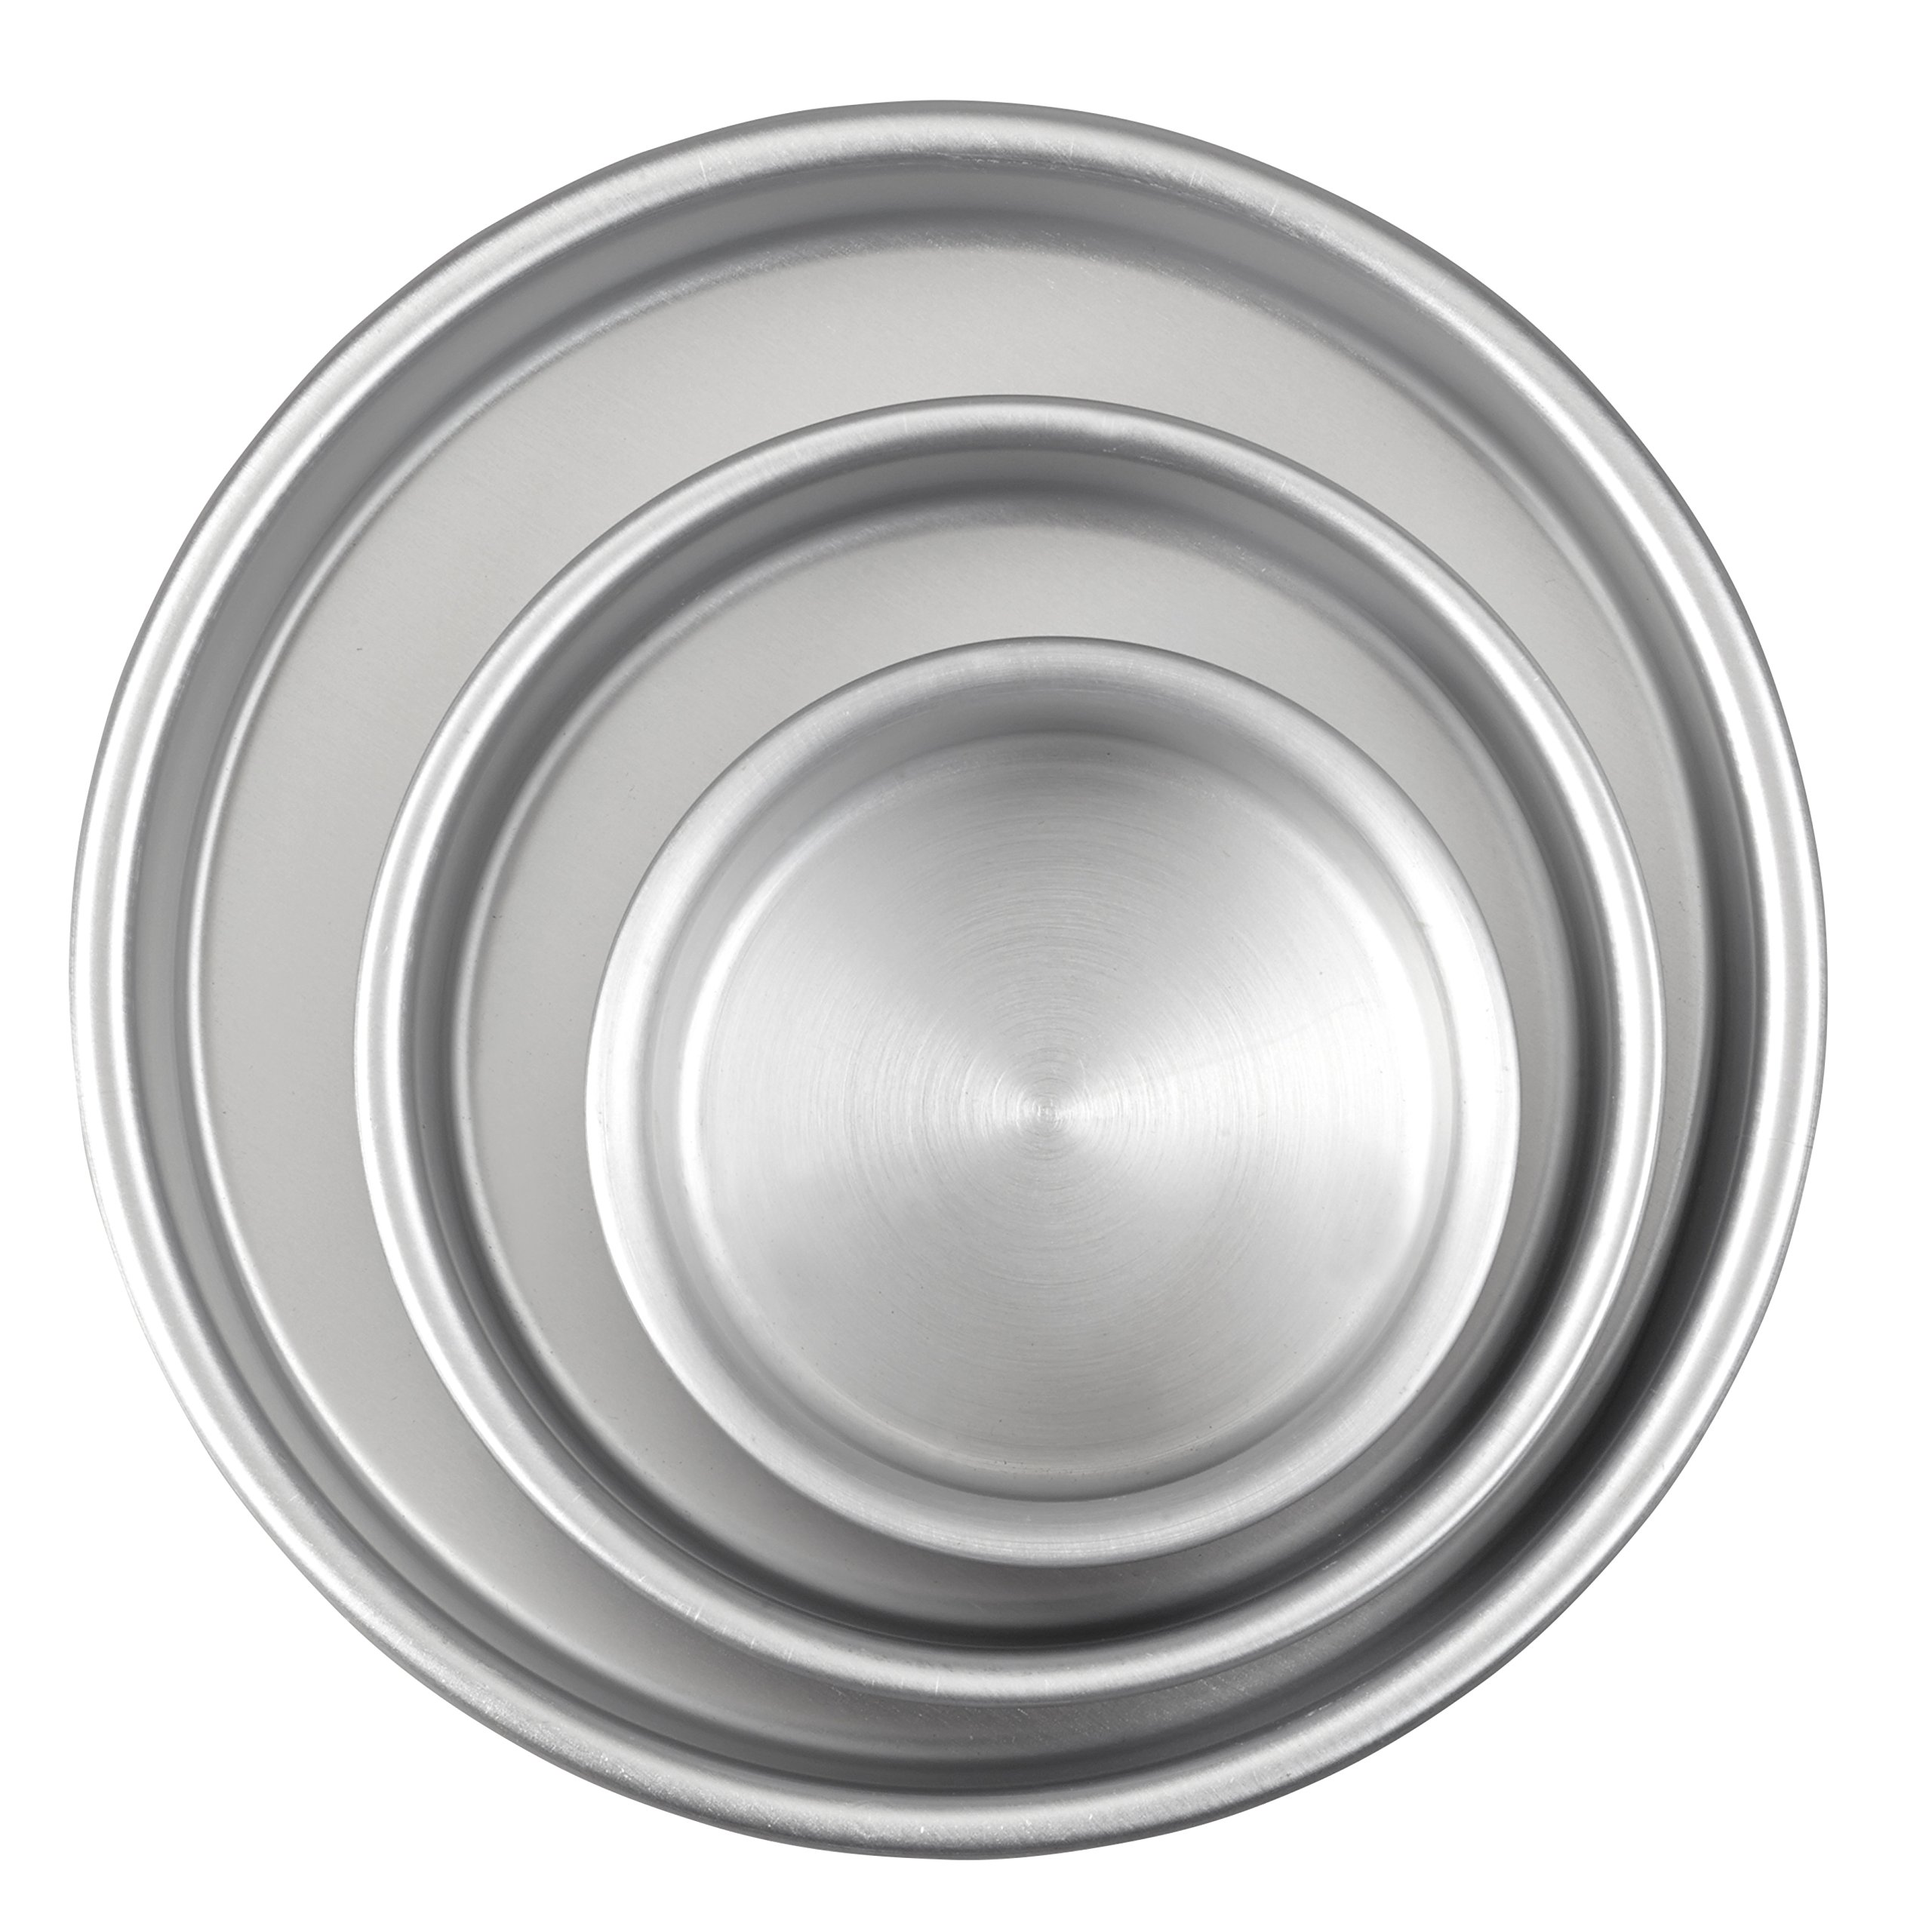 Aluminum Round Cake Pans, 3-Piece Set with 8-Inch, 6-Inch and 4-Inch Cake Pans by Wilton